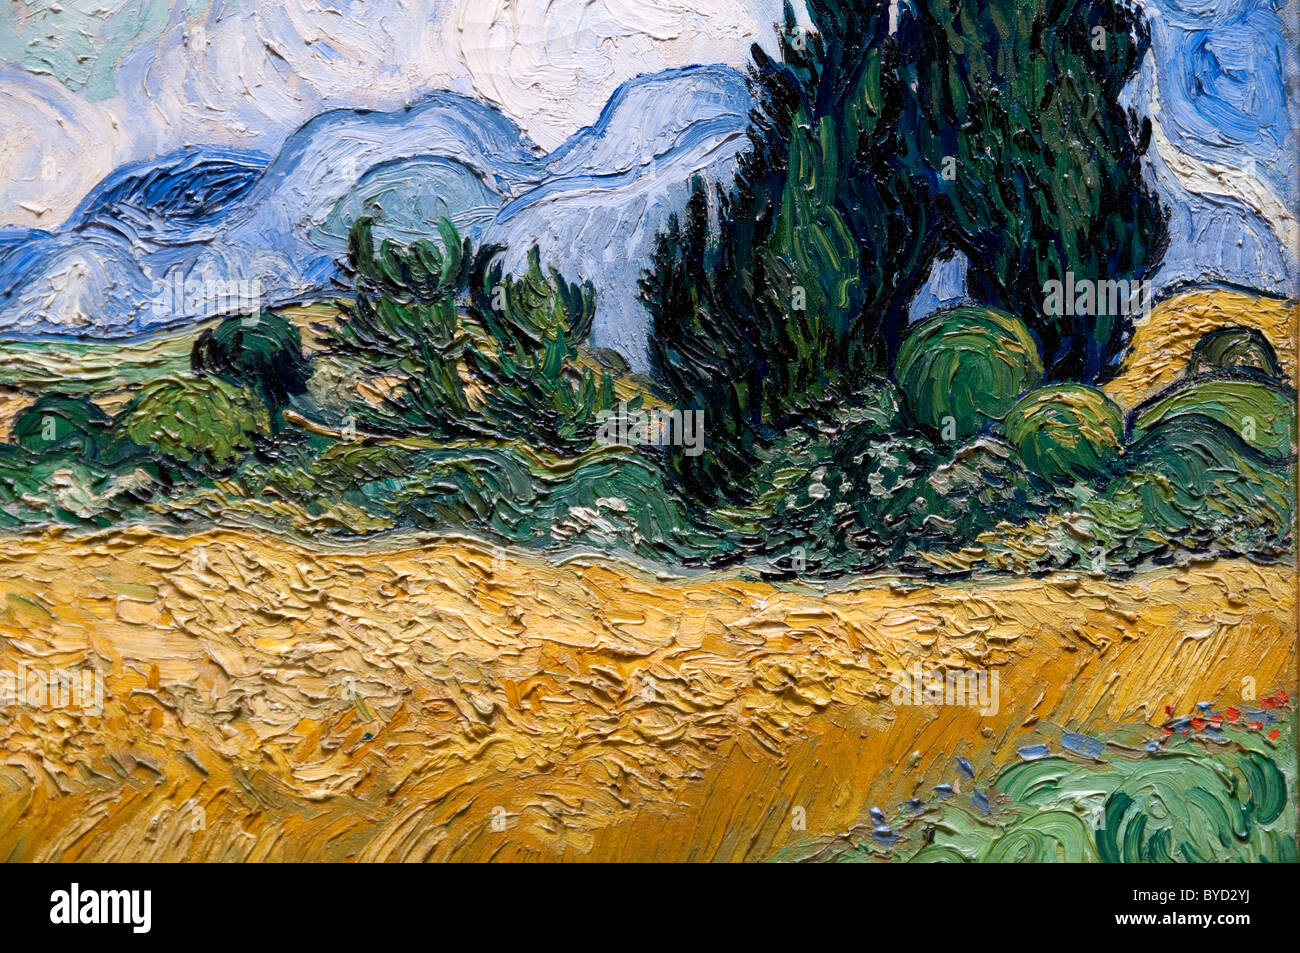 Detail: Wheat Field with Cypresses, 1889, by Vincent van Gogh, - Stock Image